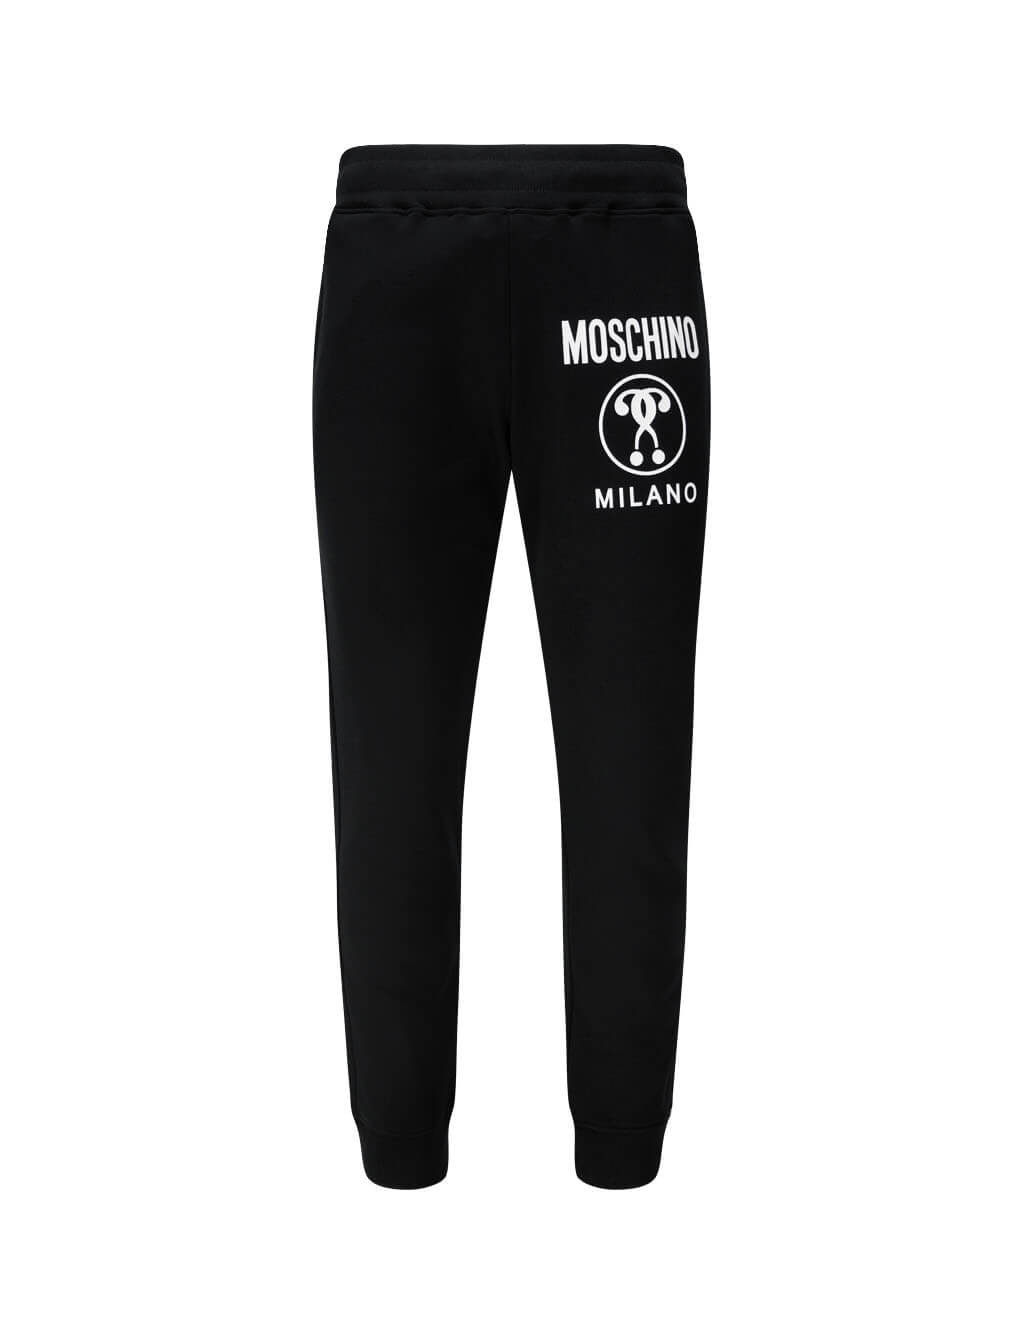 Men's Black Moschino Double Question Mark Track Pants J032170271555